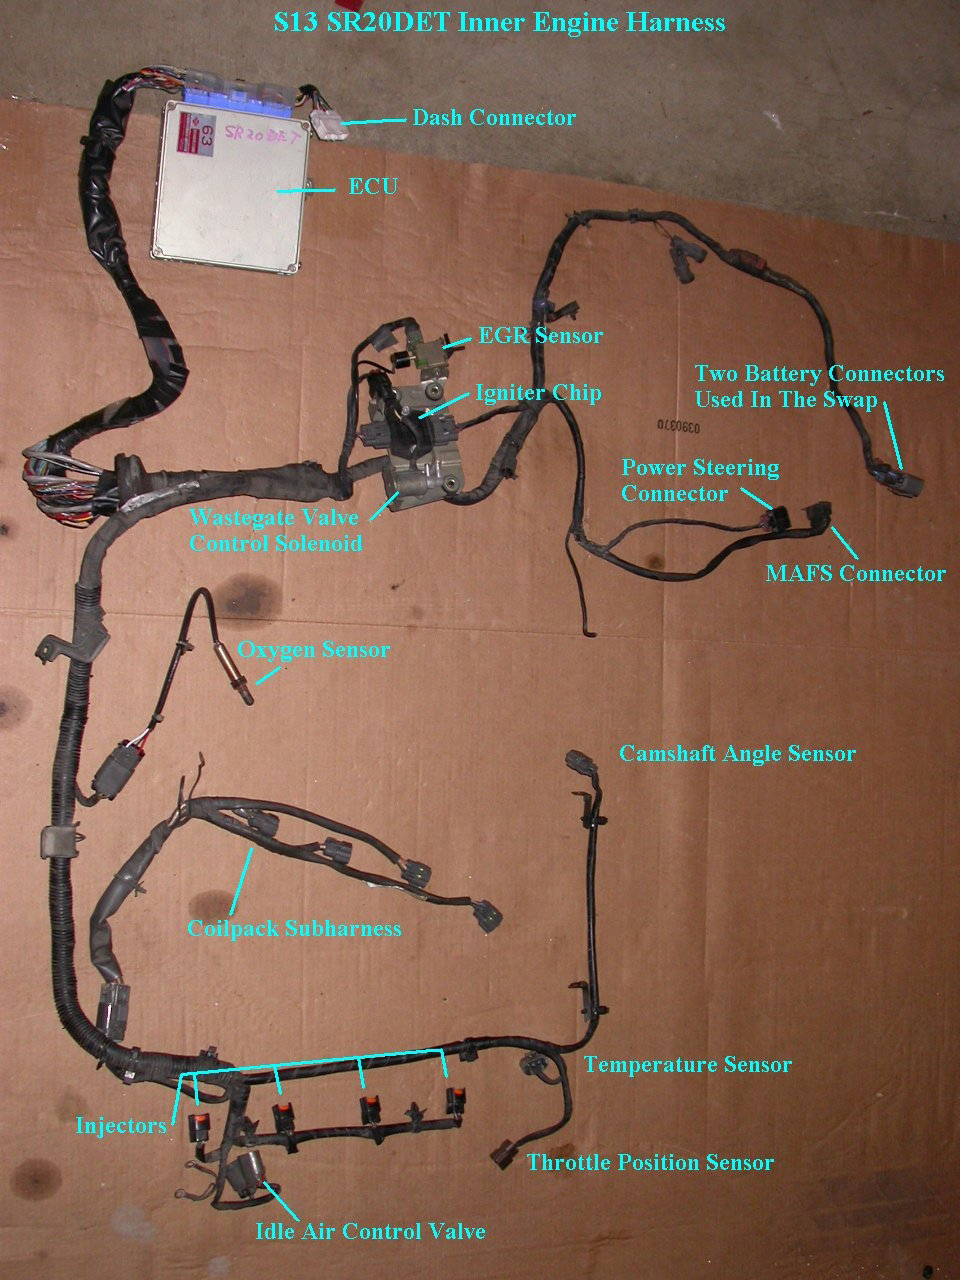 UNCUT sr20de_L vhc performance engine parts s13 sr20det wiring harness install at virtualis.co